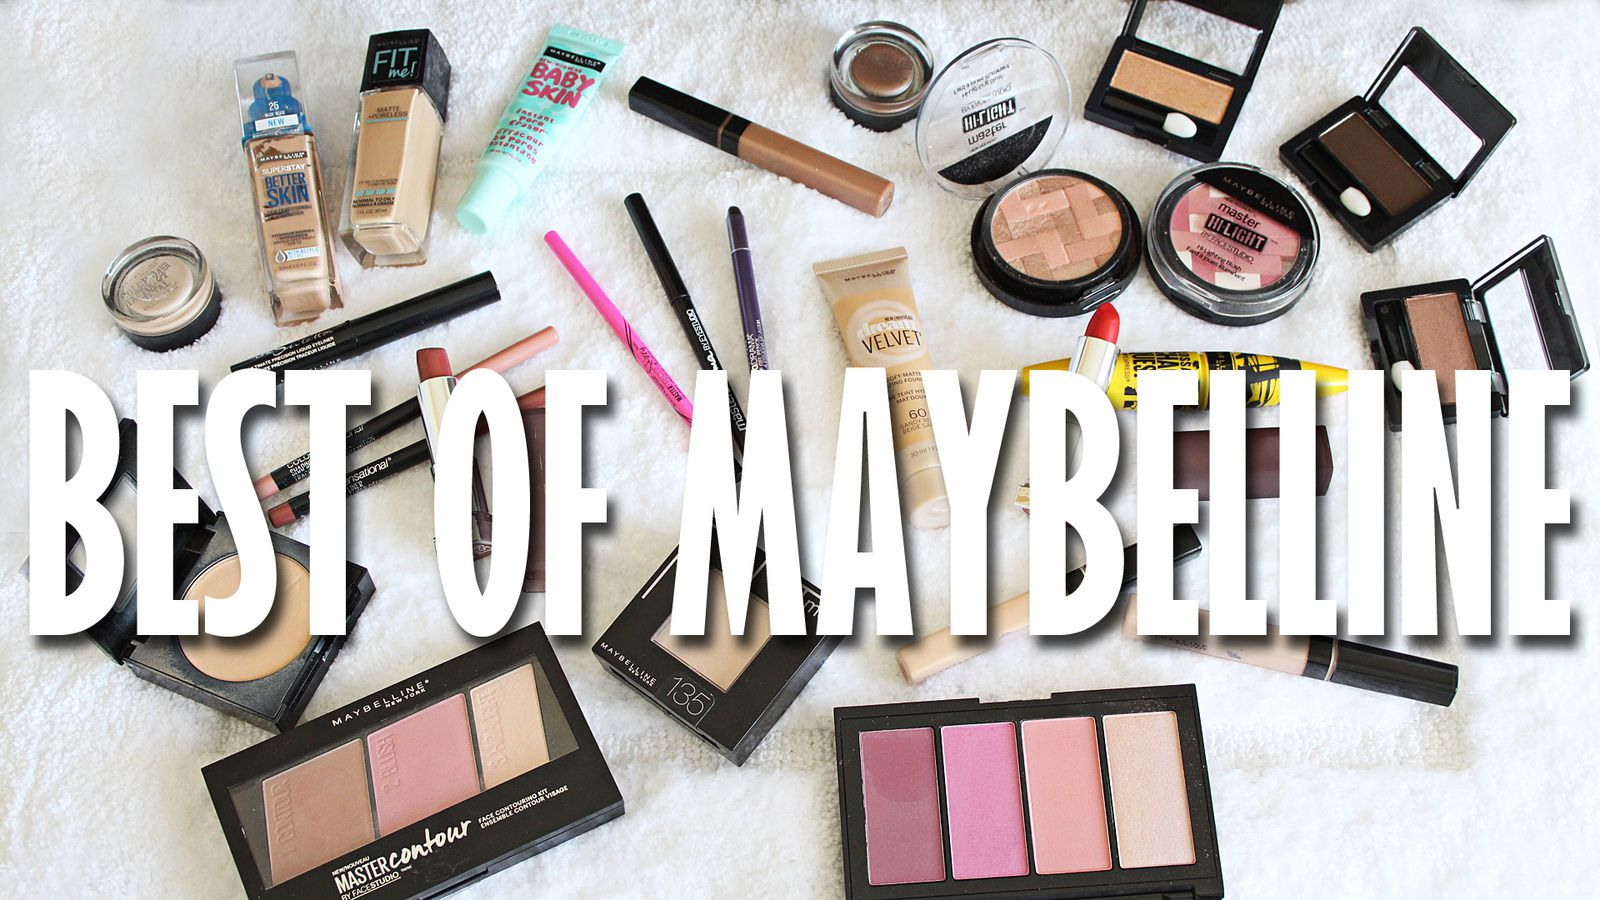 BEST of MAYBELLINE Drugstore Makeup!